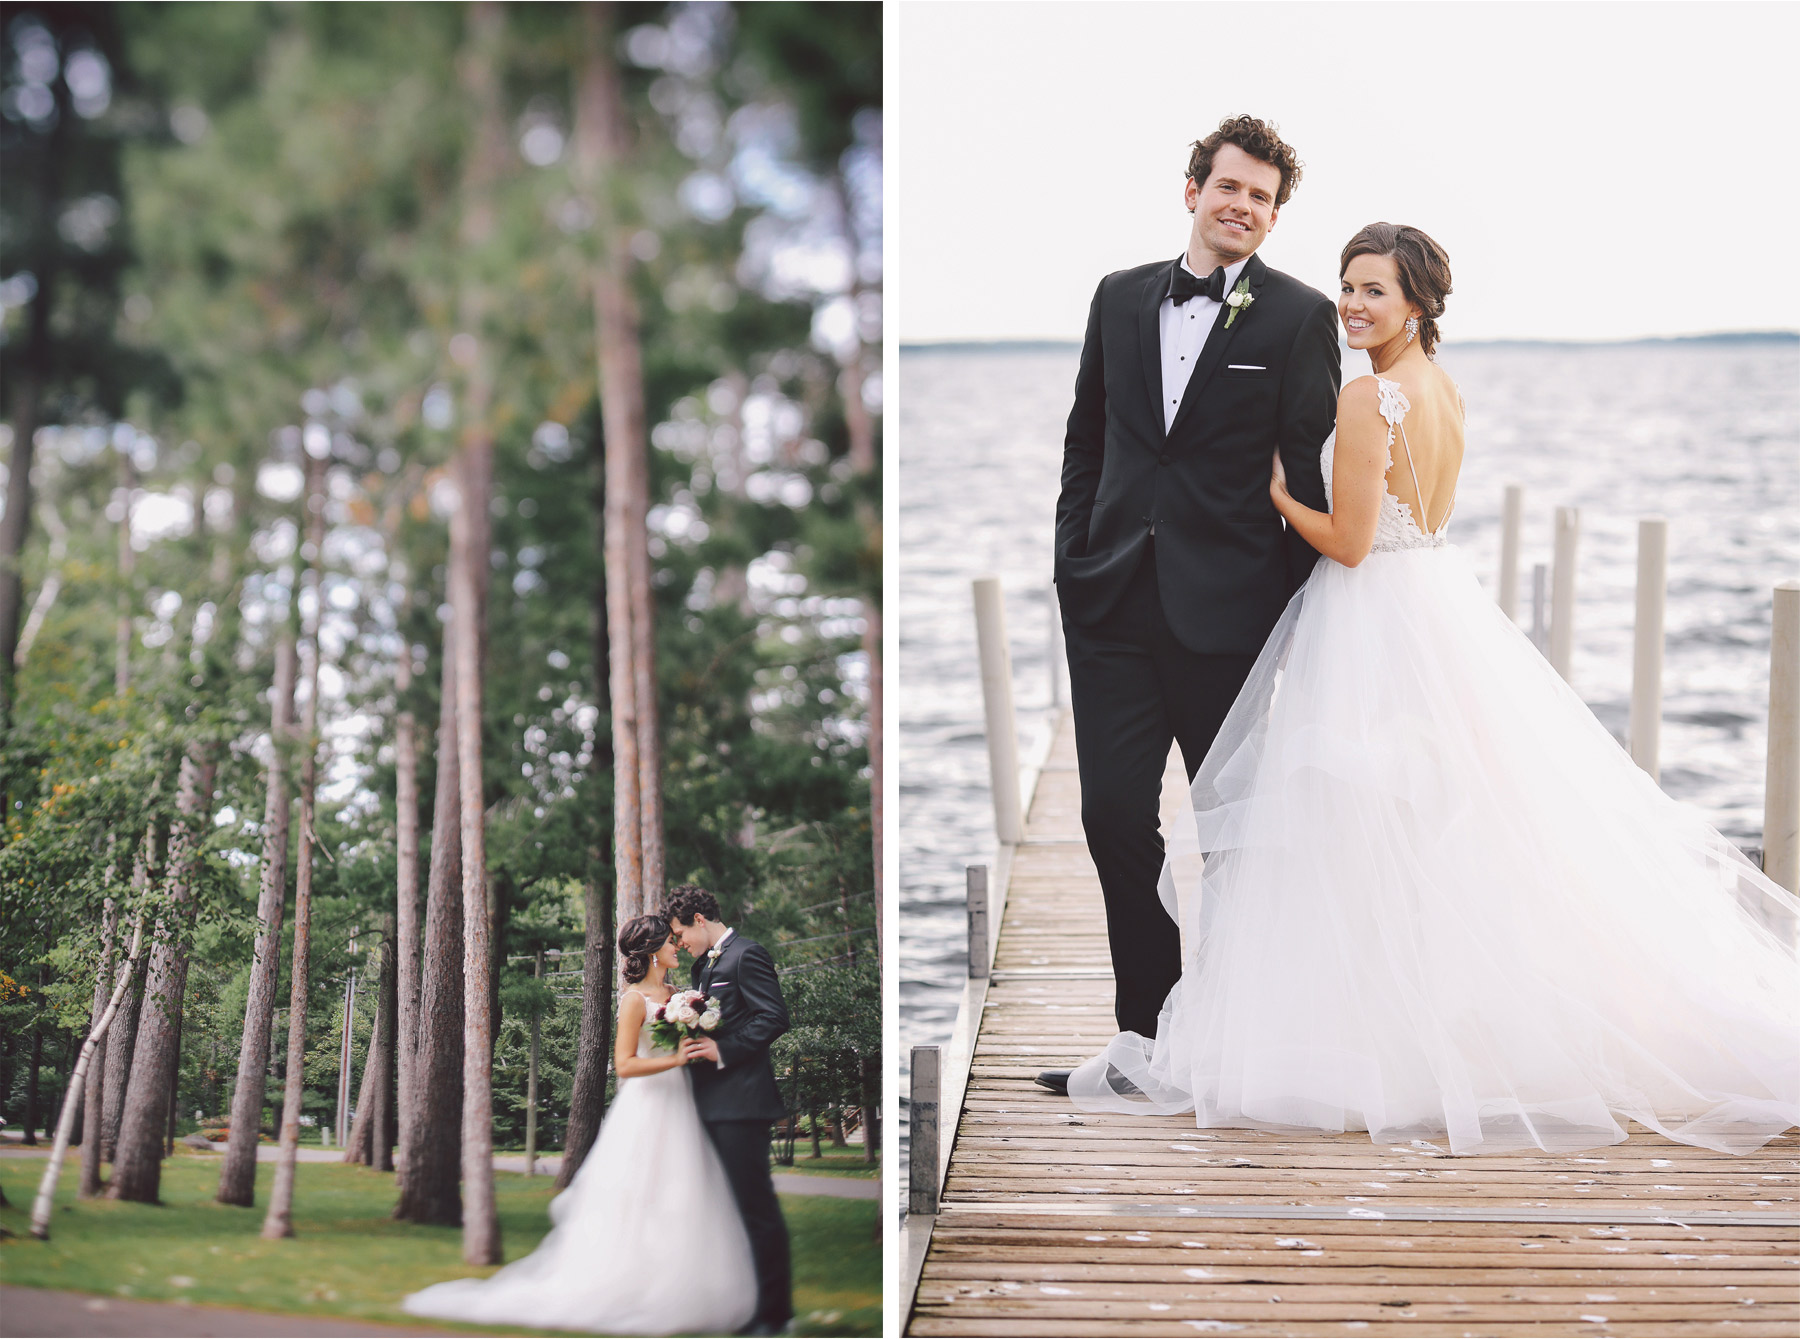 14-Brainerd-Minnesota-Wedding-Photography-by-Vick-Photography-Grand-View-Lodge-Woods-Lake-Bethany-and-Anthony.jpg